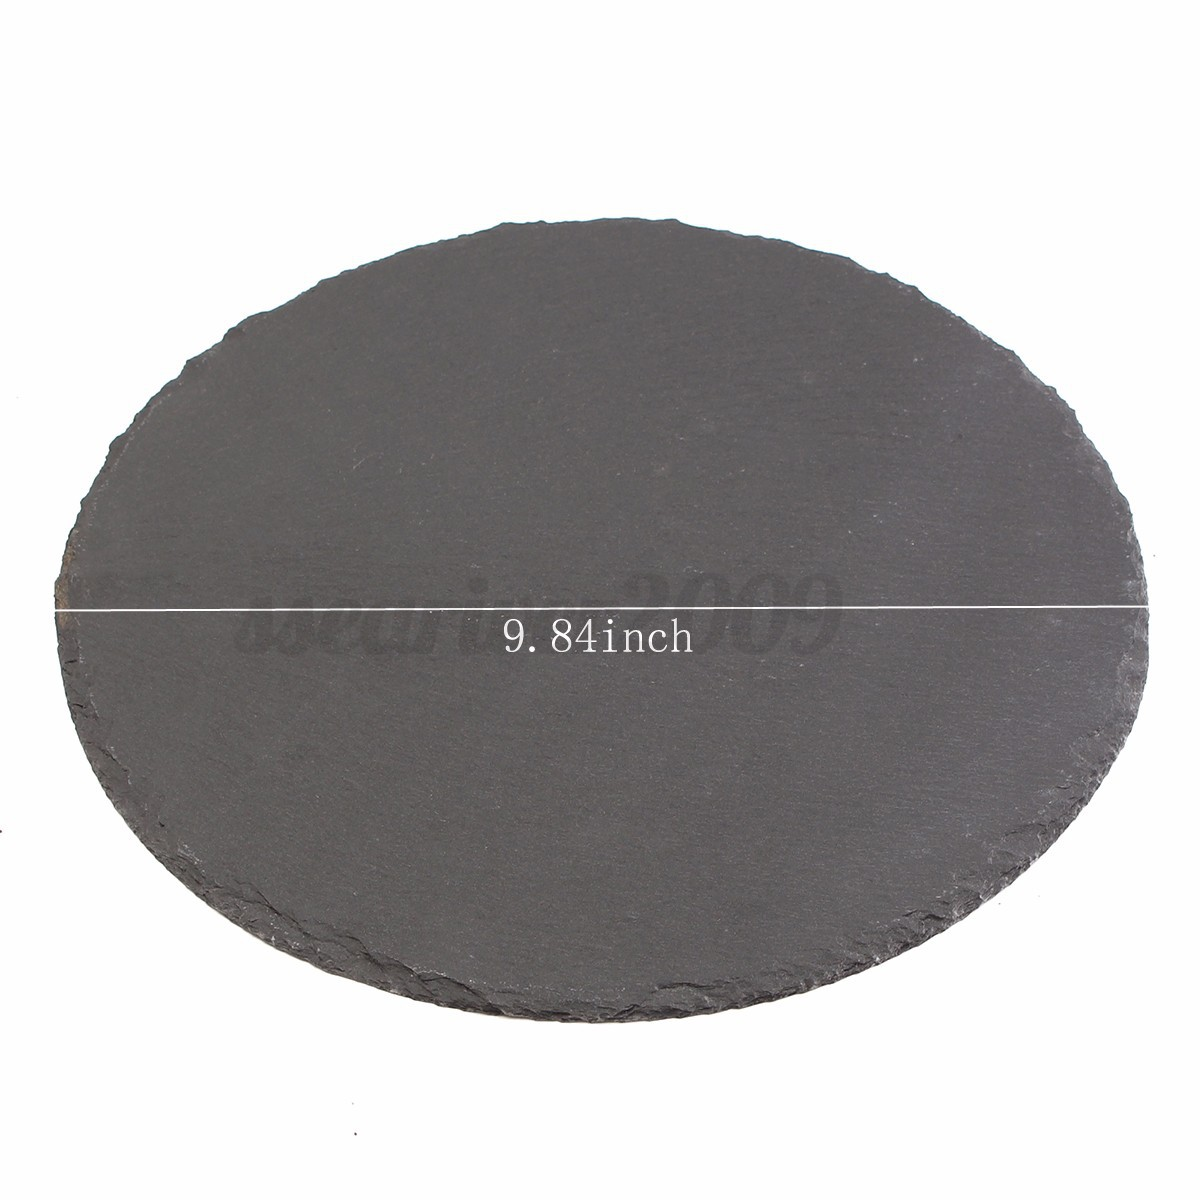 Natural slate stone placemats drink coaster tableware table mat modern decor ebay - Slate drink coasters ...